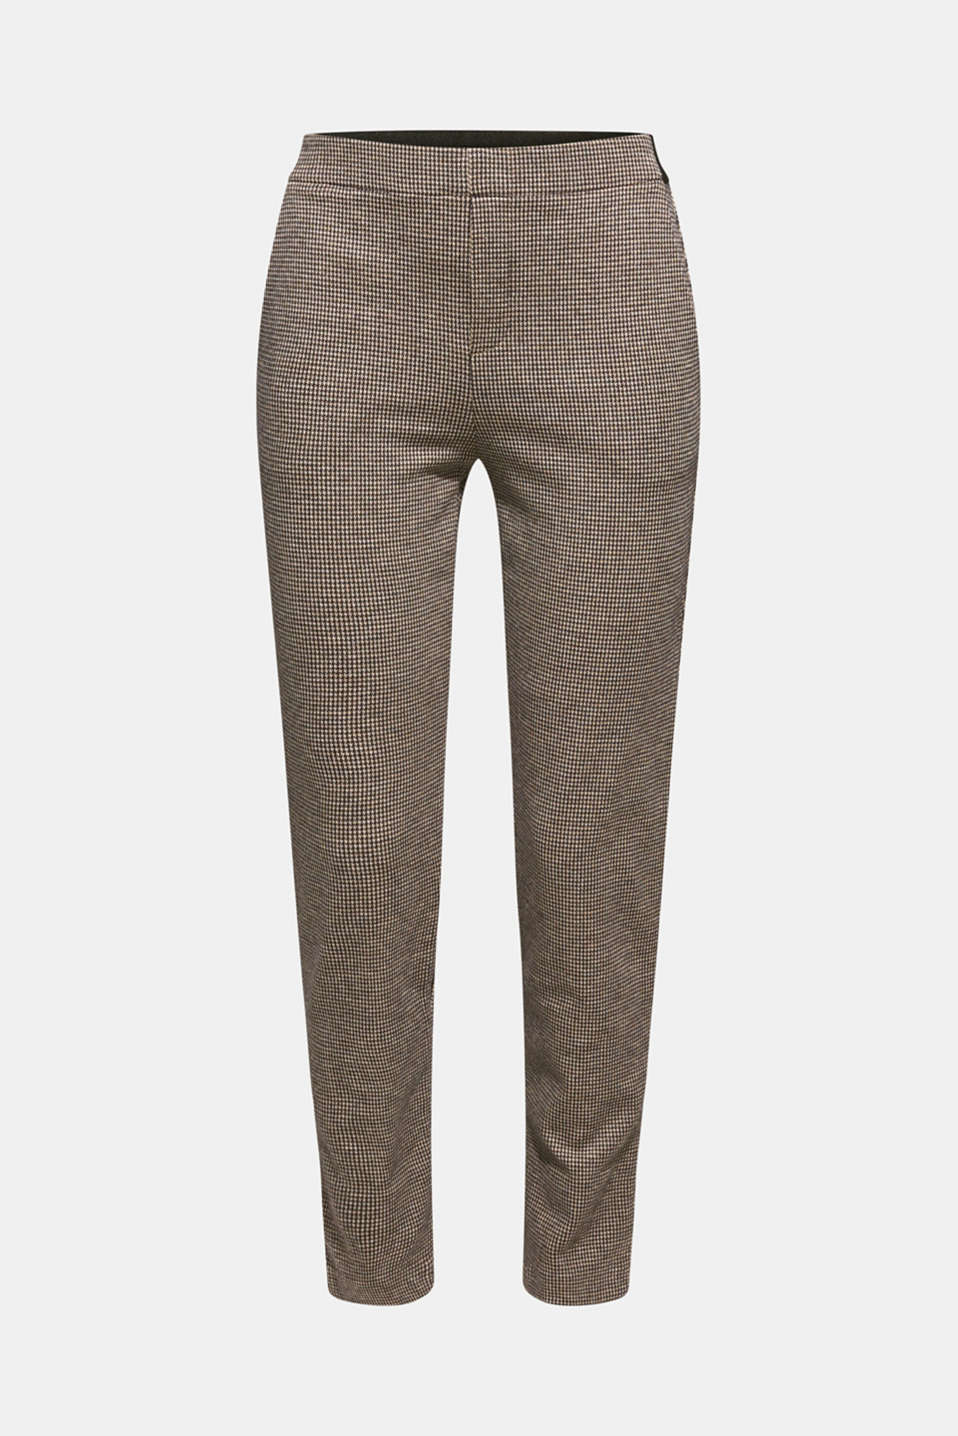 JERSEY SUIT mix + match stretch trousers, CAMEL, detail image number 7